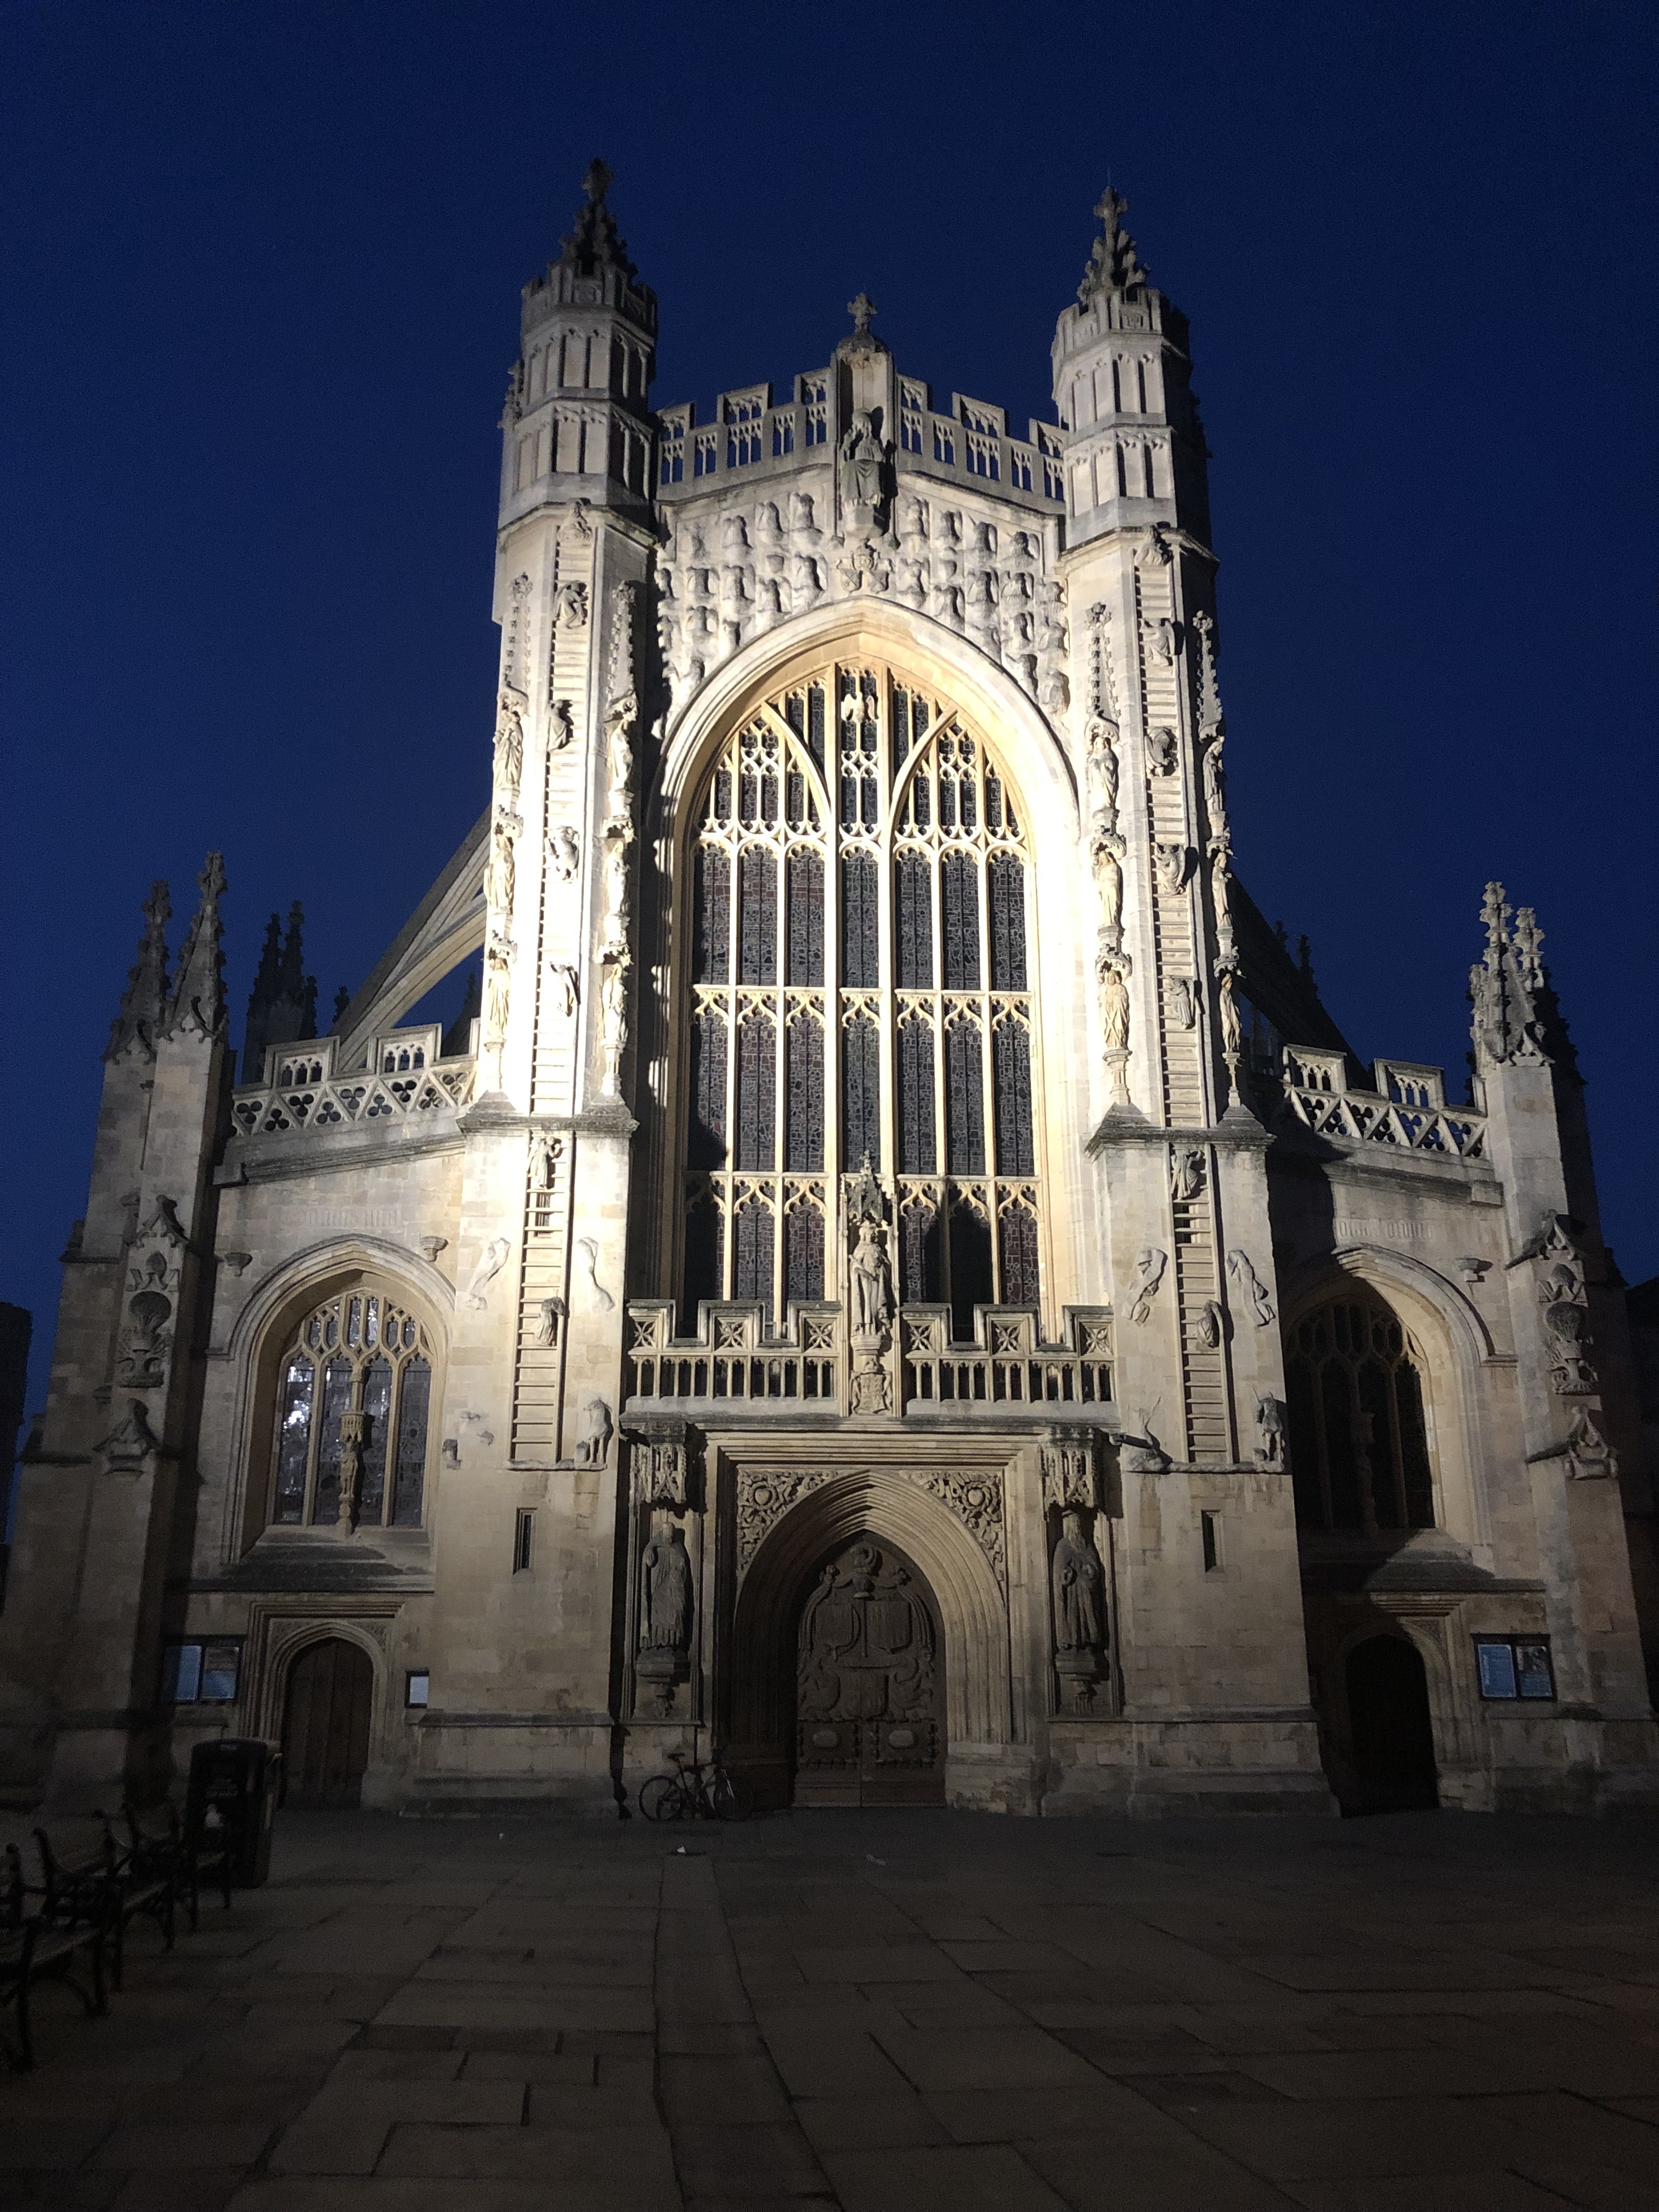 In front of a dark blue night sky is a large Gothic cathedral. It is illuminated by spotlights pointed up at it from the ground. The abbey has many spires, buttresses, windows, and statues. In front of the abbey is an empty town square.